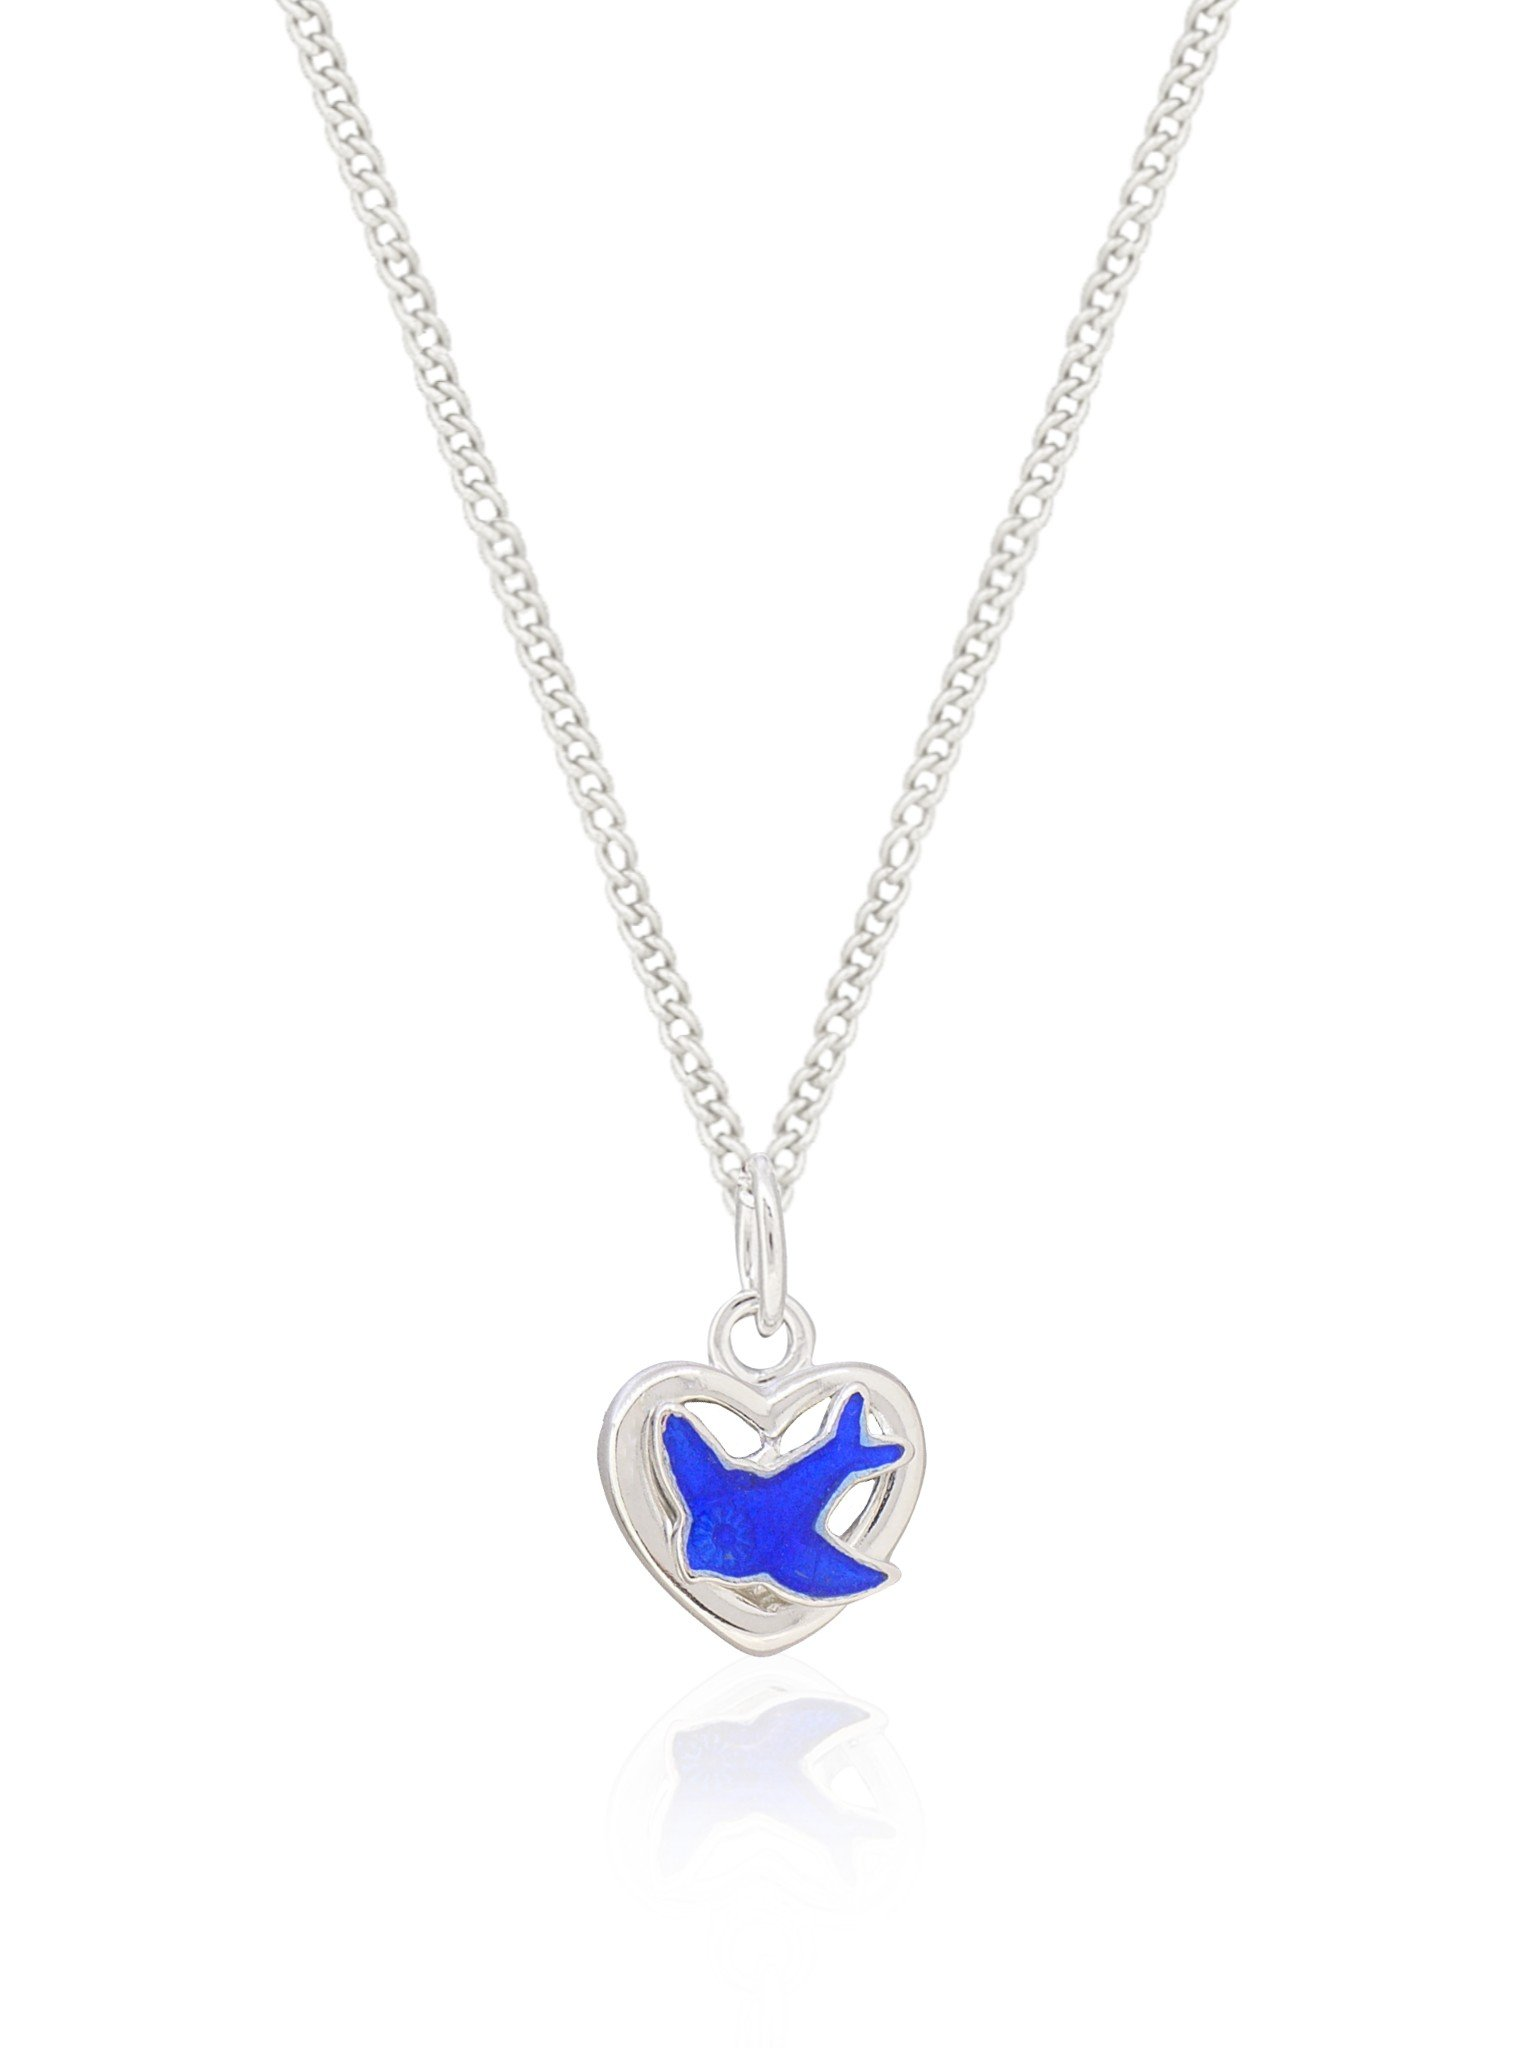 Bluebird Heart Charm Necklace and Earrings Set in Sterling Silver